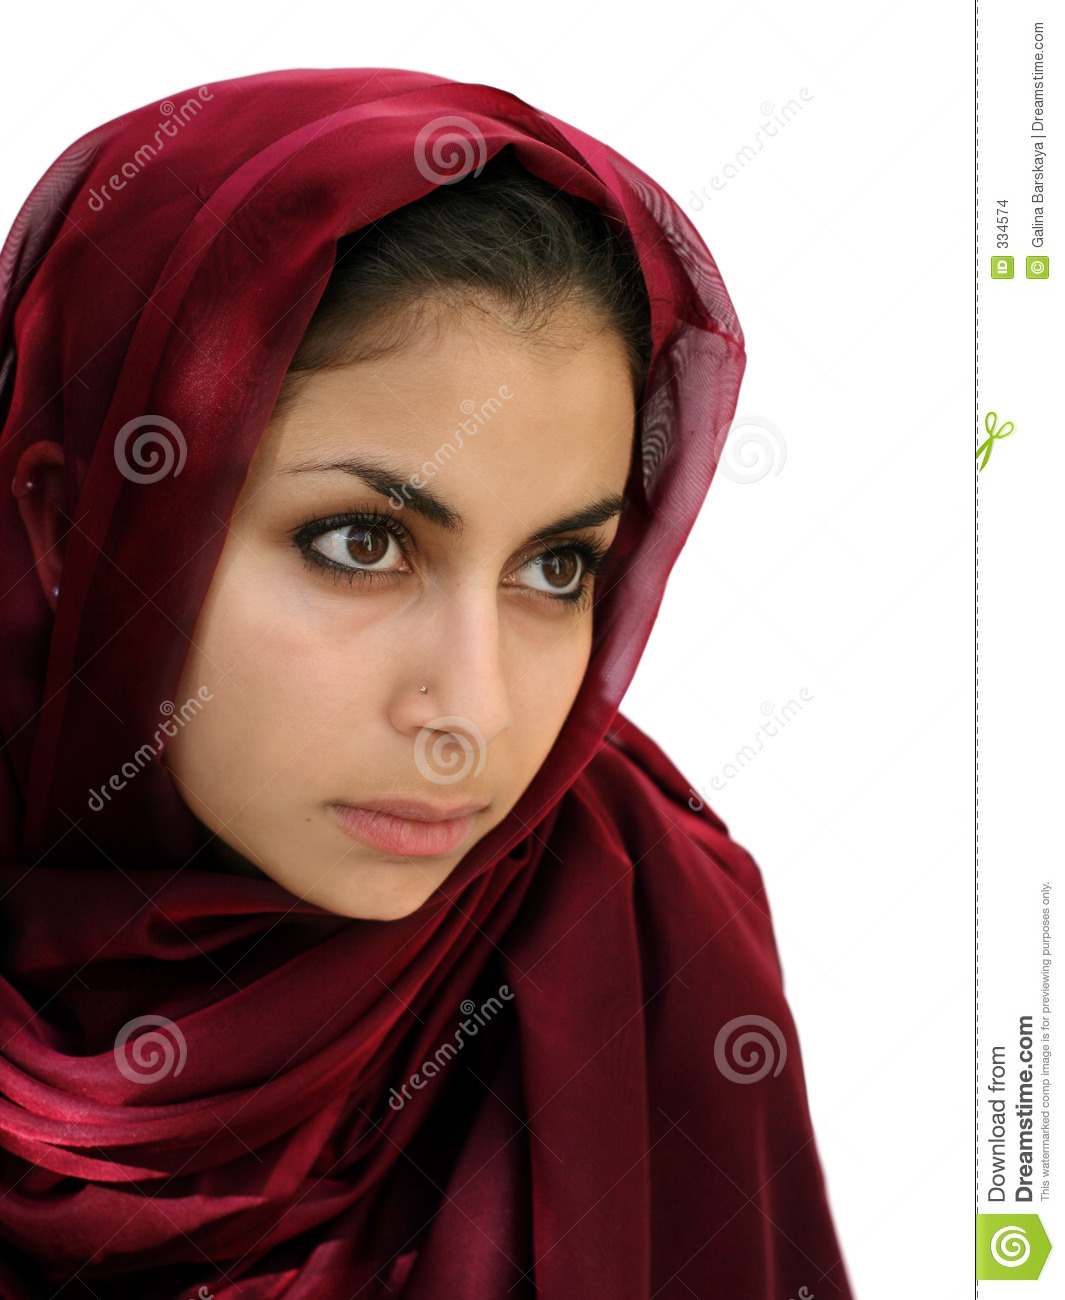 Middle Eastern Girl Stock Images - Image: 334574